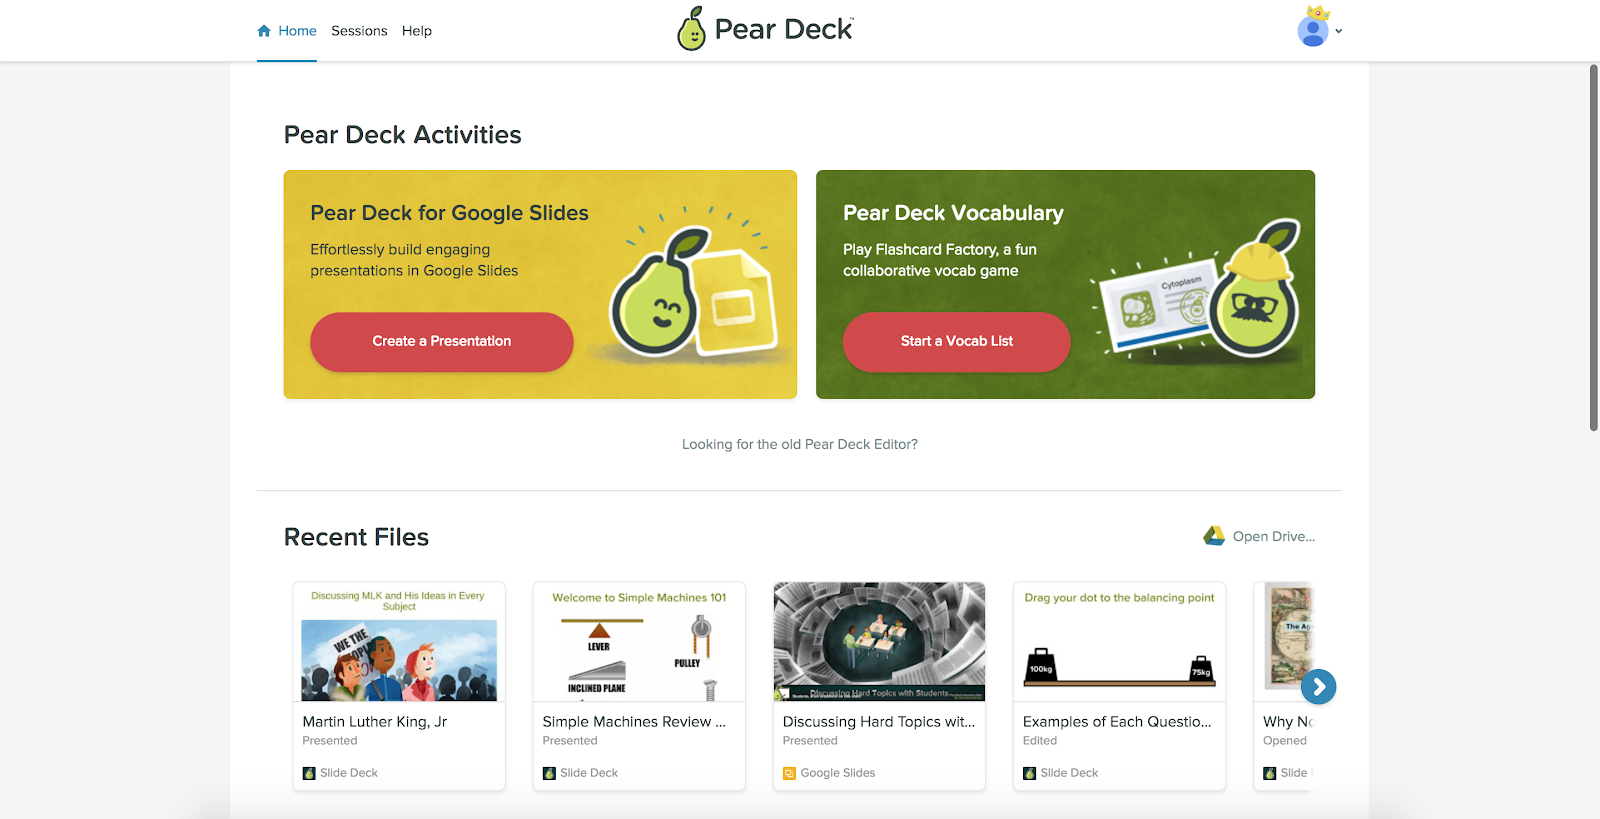 Introducing a Fresh New Look for Home! – Pear Deck – Medium